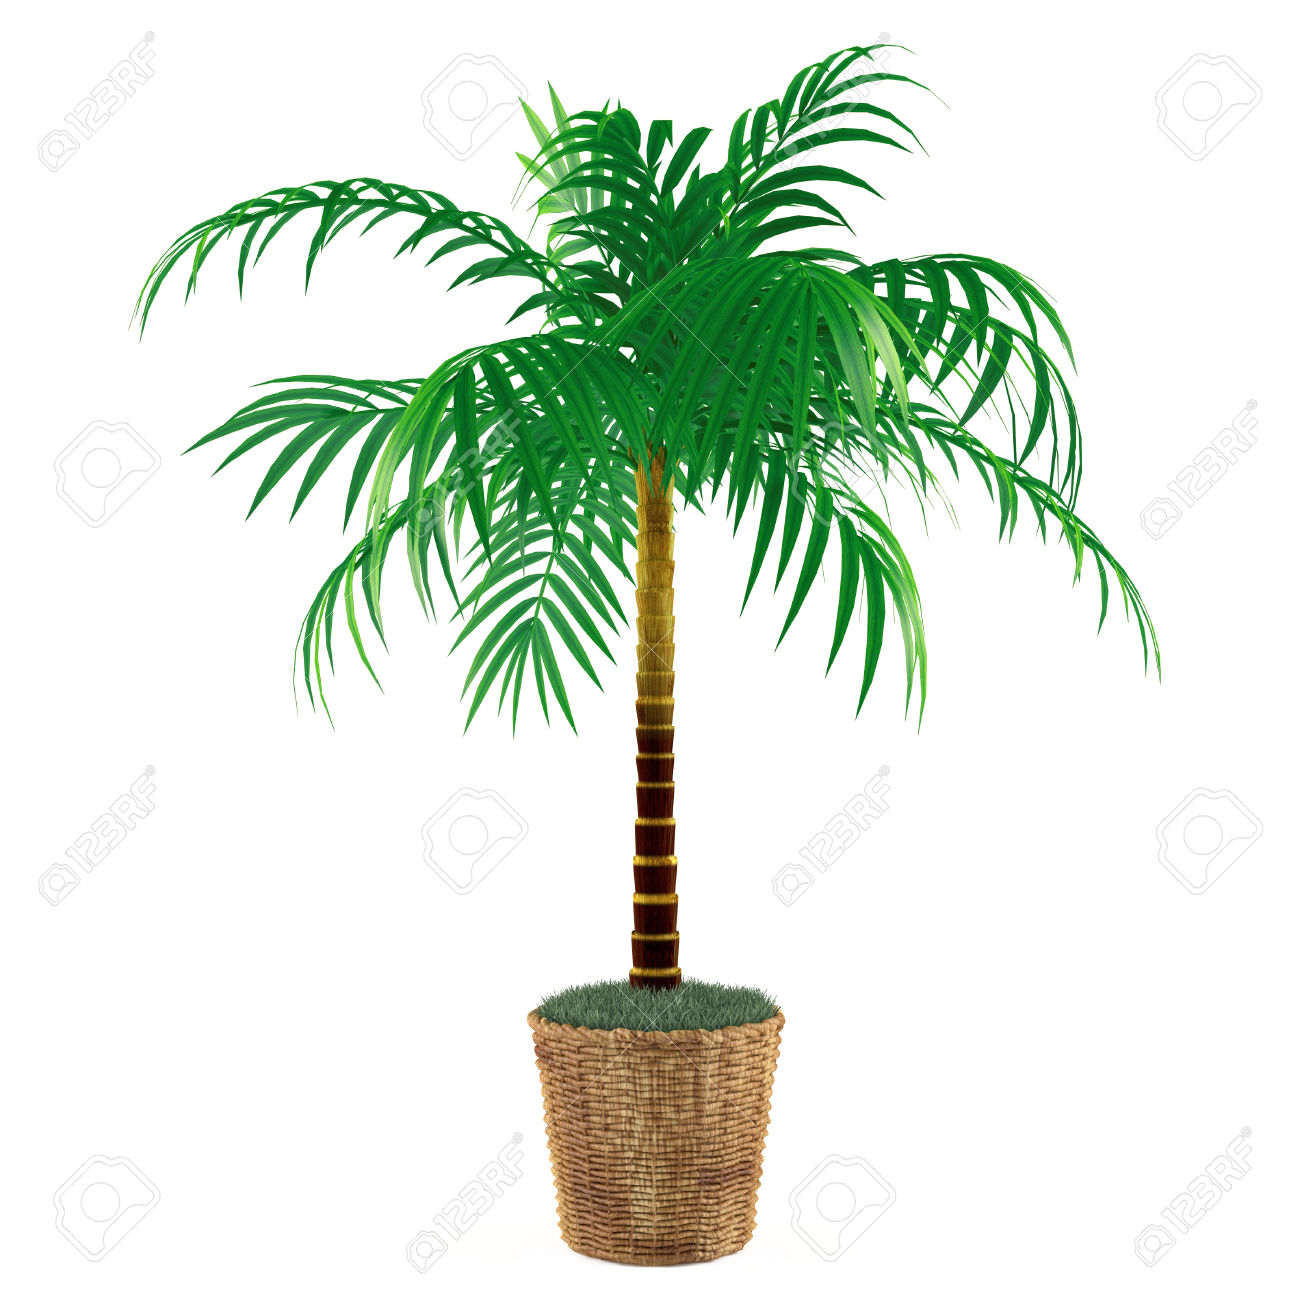 67 Palm Tree Yucca Stock Vector Illustration And Royalty Free Palm.